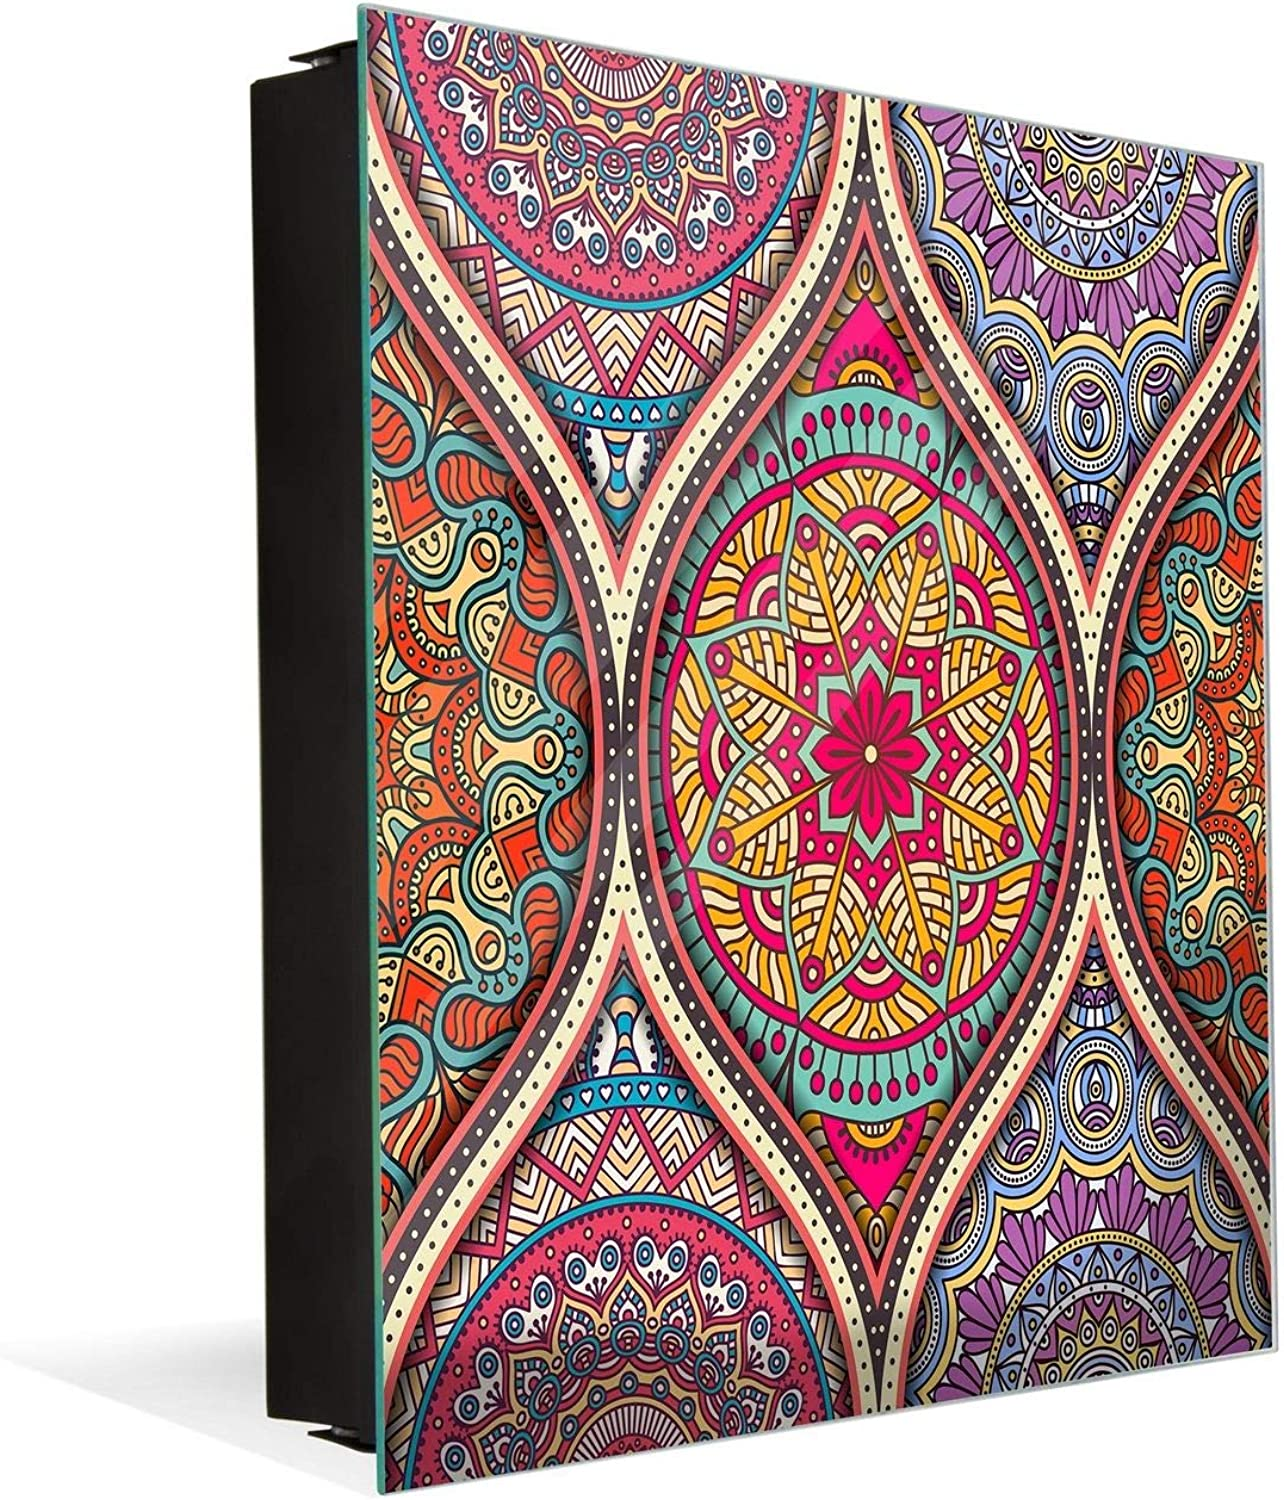 Wall Mount Key Box Together with Decorative Dry Erase Board K12 Islam Pattern